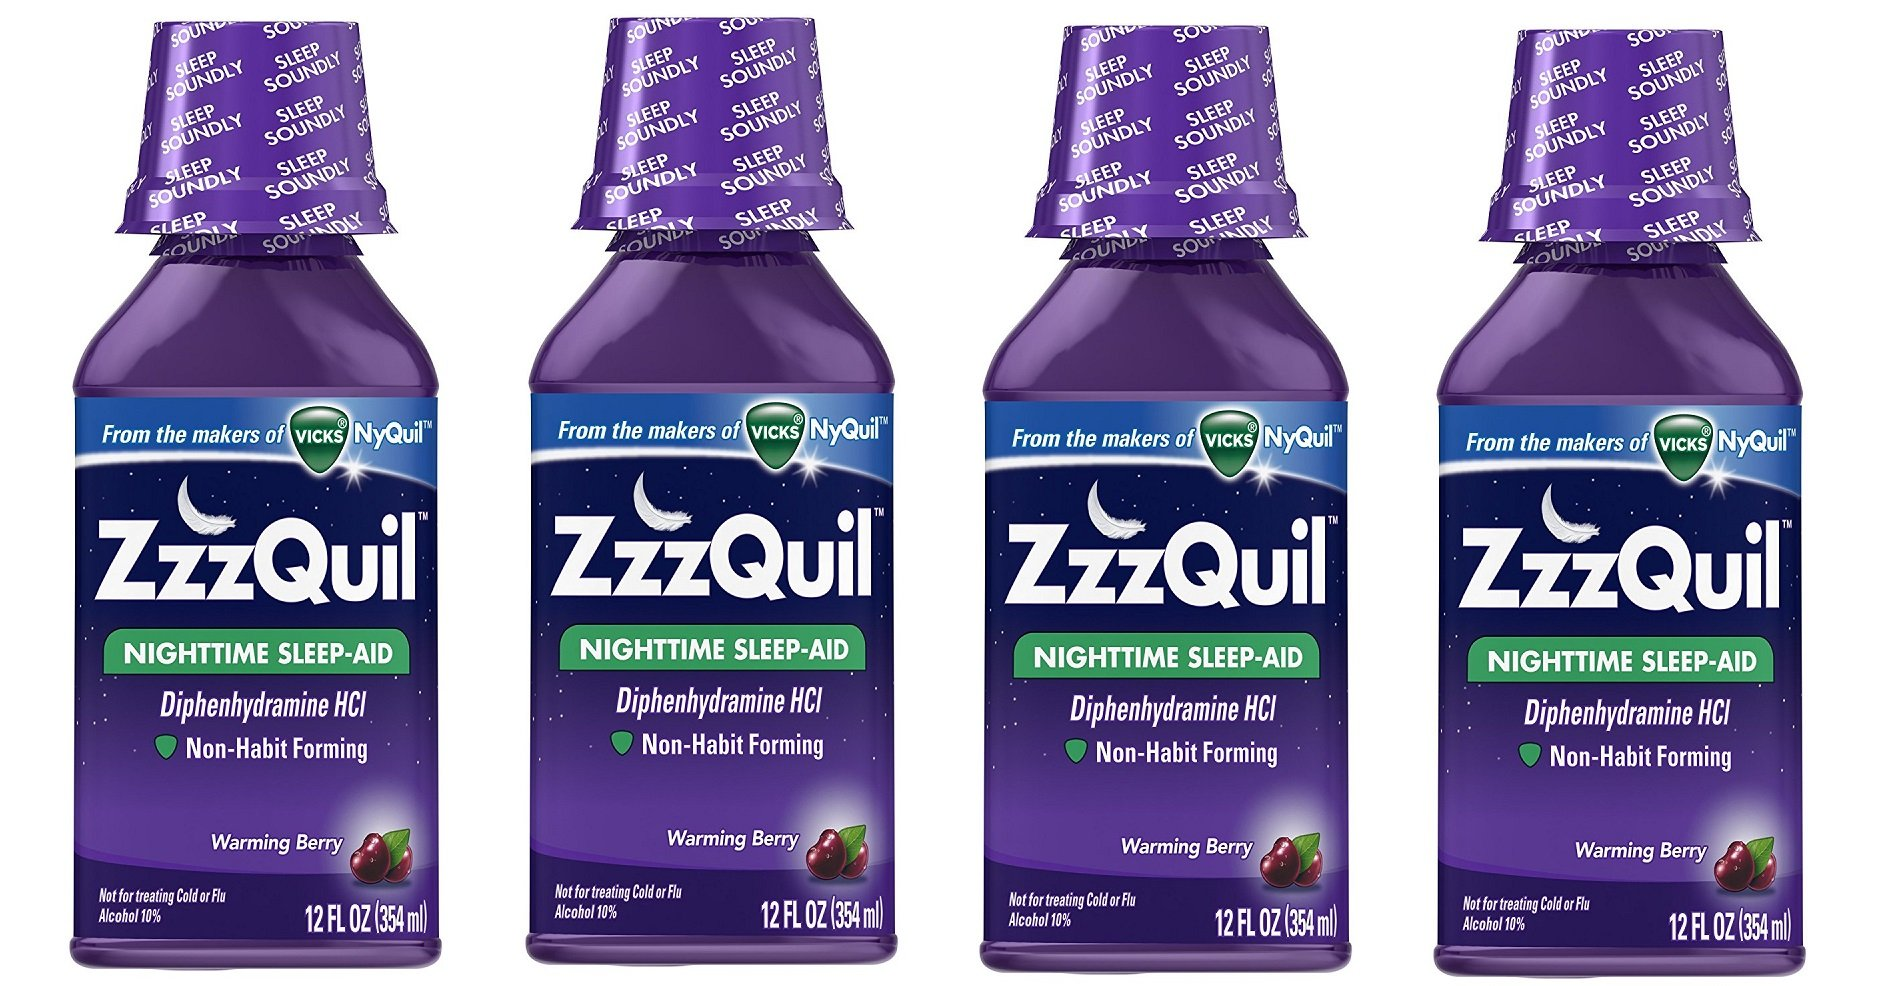 ZzzQuil Nighttime Sleep Aid, Warming Berry Liquid cHgzqy, 4Pack (12 Fl Oz) by ZzzQuil (Image #1)